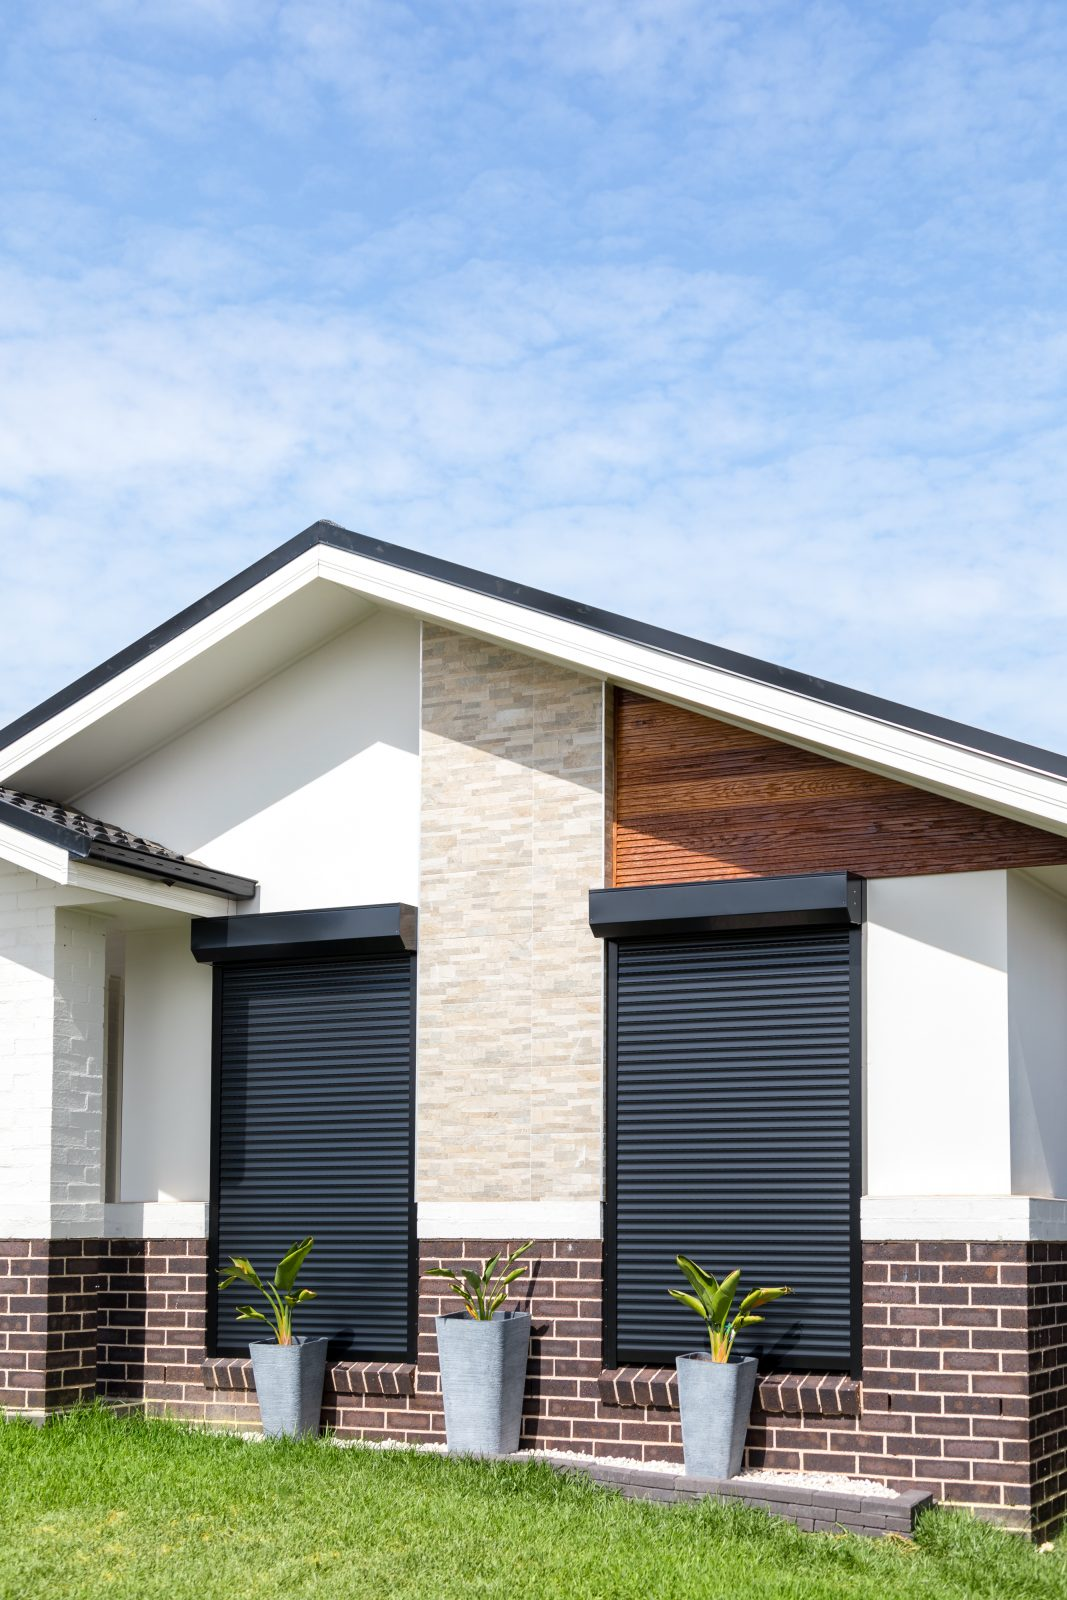 Increase Your Home's Value with Roller Shutters